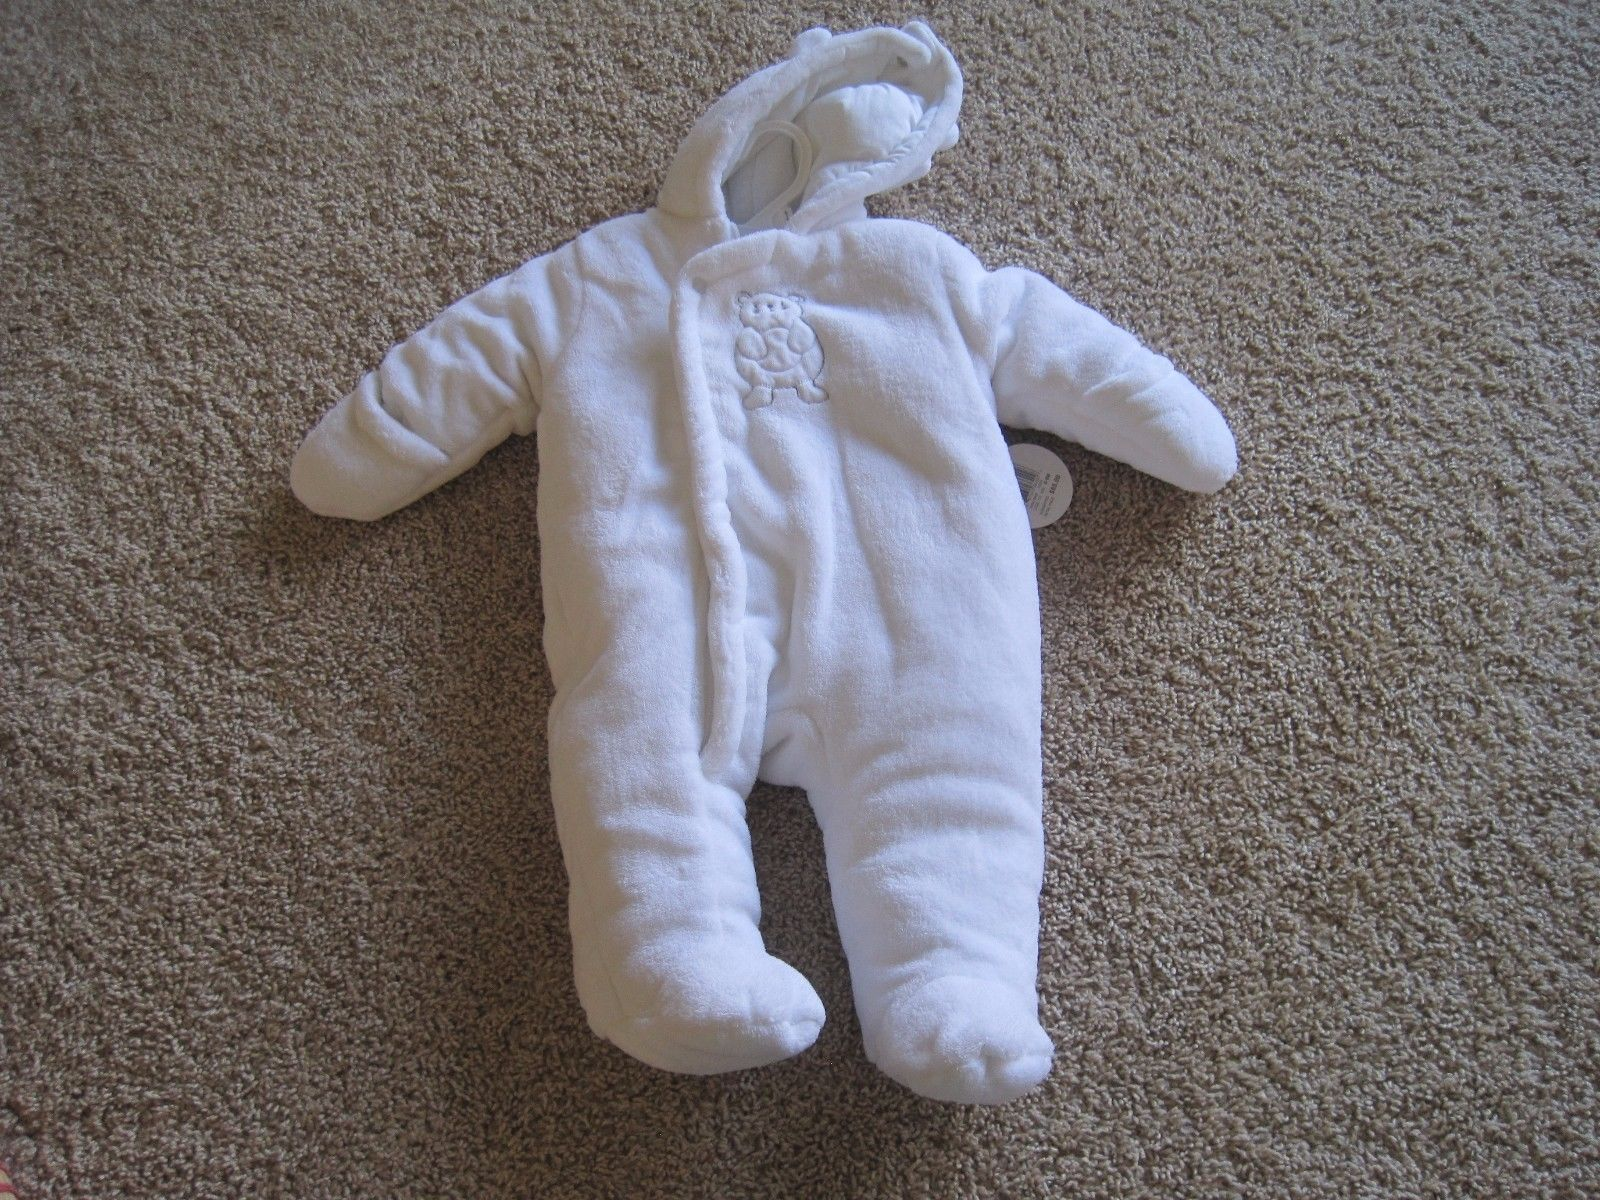 BNWT Absorba infant girls padded winter suit, mittens, footed, 6-9M, Ivory, $65 - $27.81